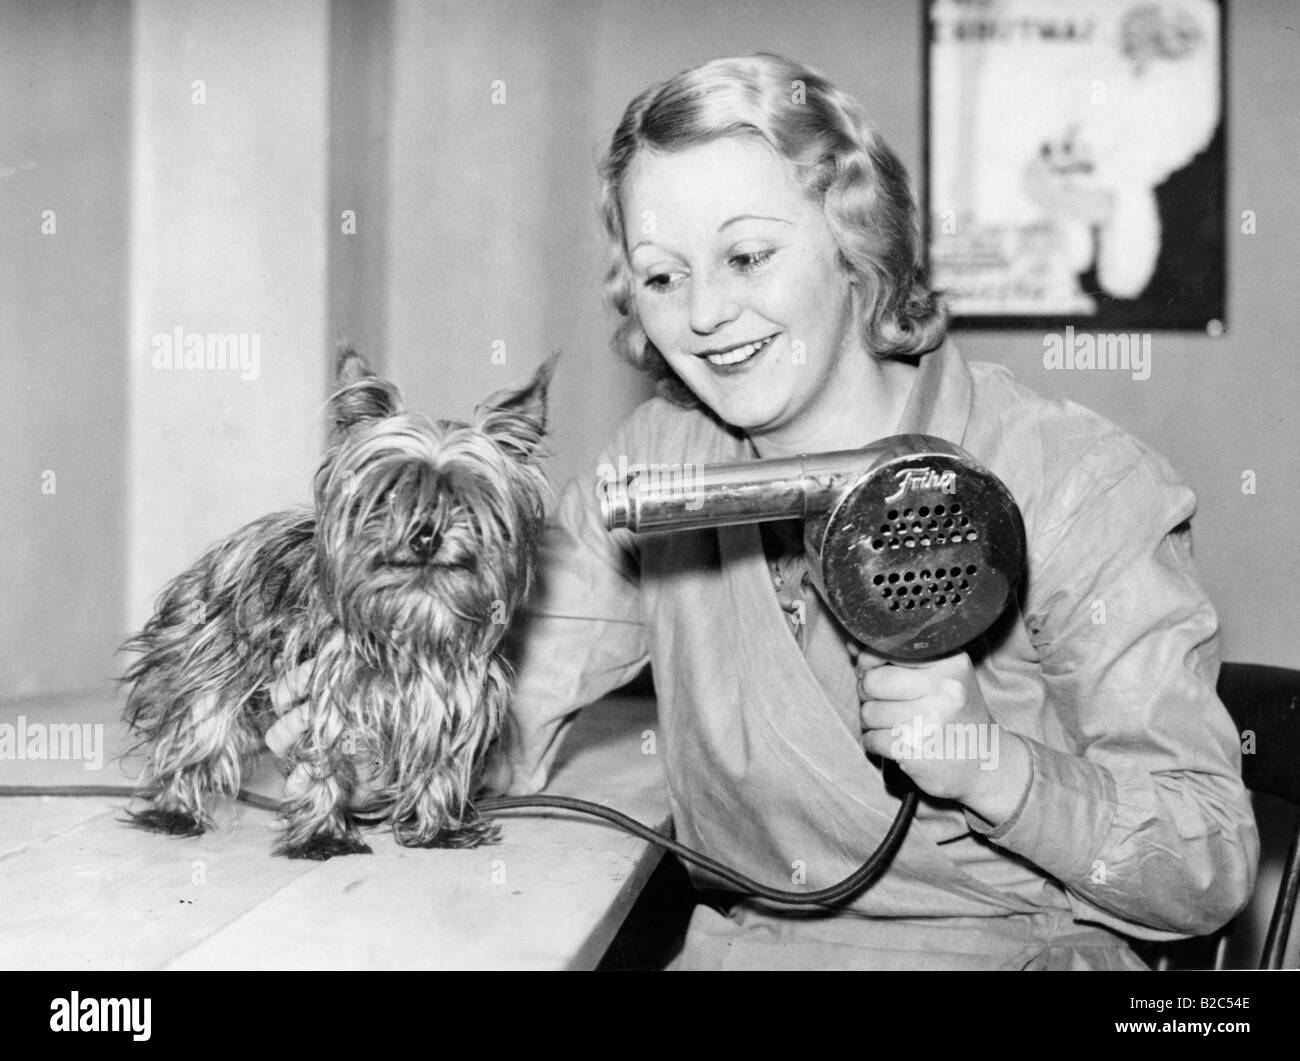 Dog being blow dried, historical photo, circa 1920 - Stock Image